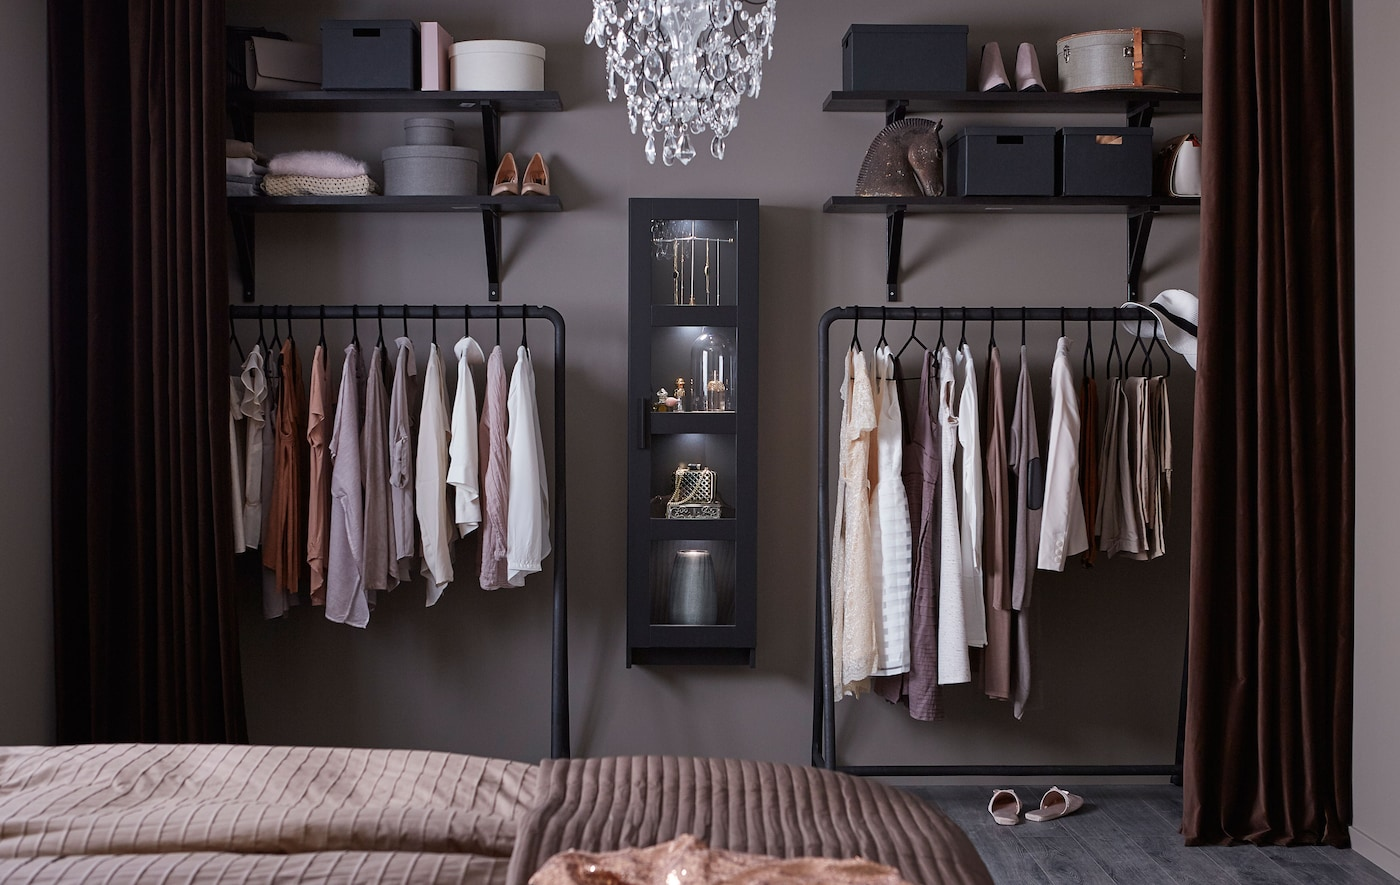 An open wardrobe consisting of black hanging racks, black open shelves and a black display cabinet, filled with clothes.